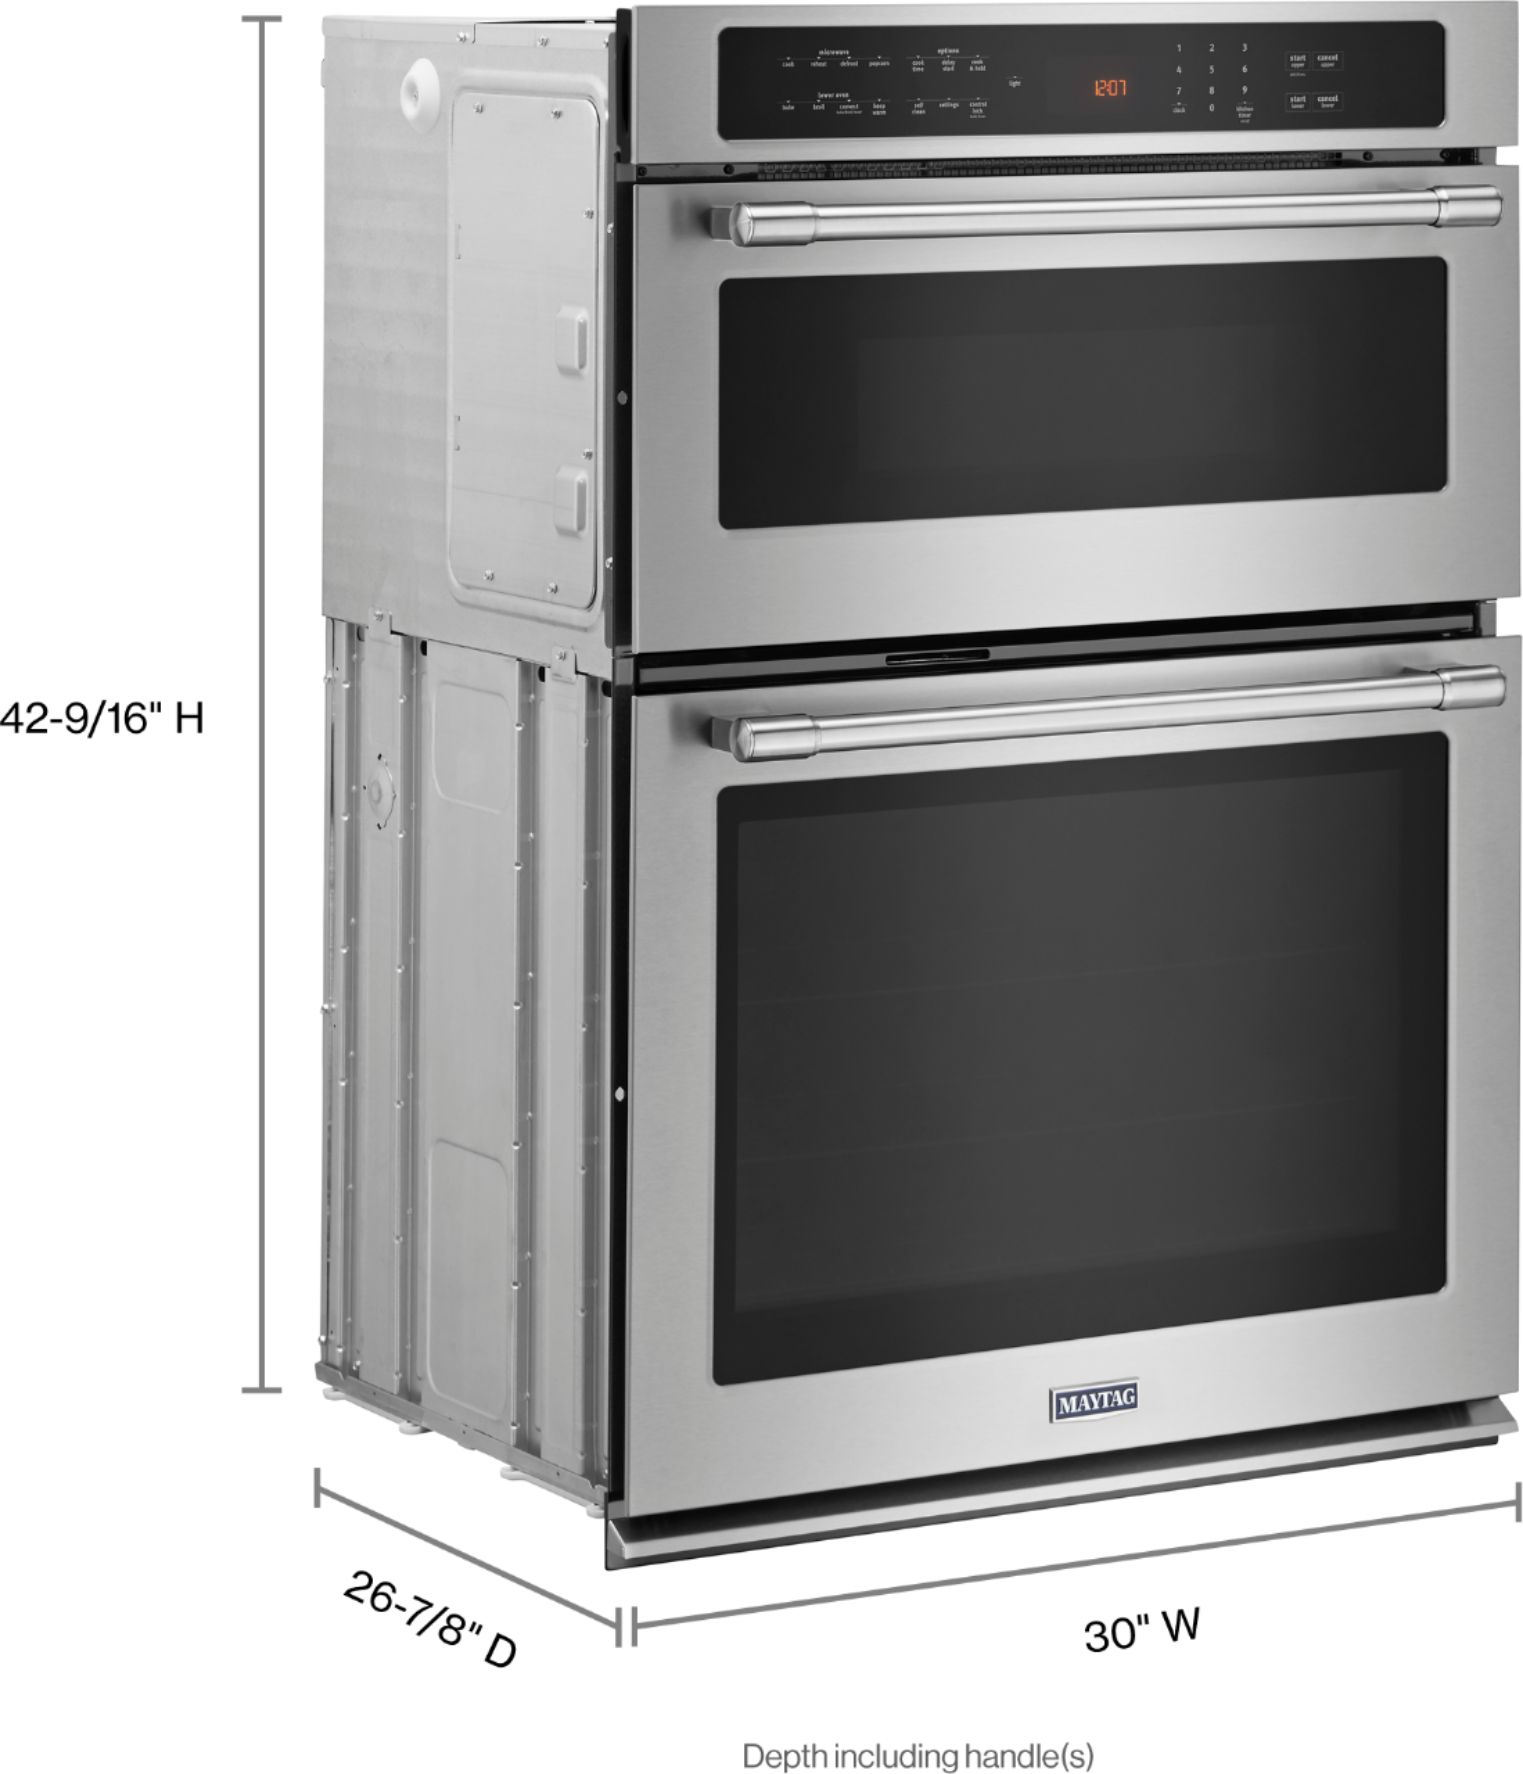 maytag 30 single electric convection wall oven with built in microwave stainless steel